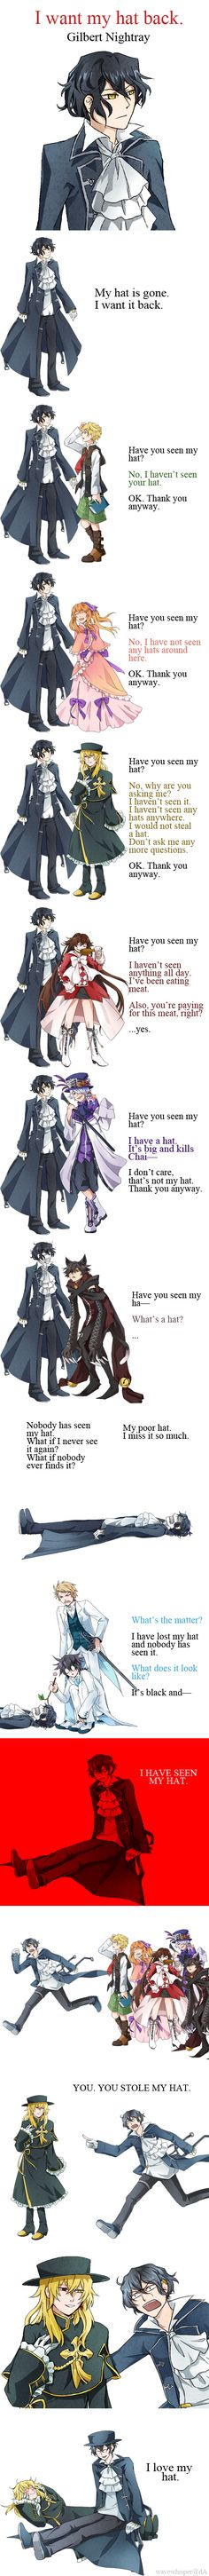 PH: I want my hat back by Wavewhisper.deviantart.com on @deviantART ~ *LAUGHING OUT LOUD*